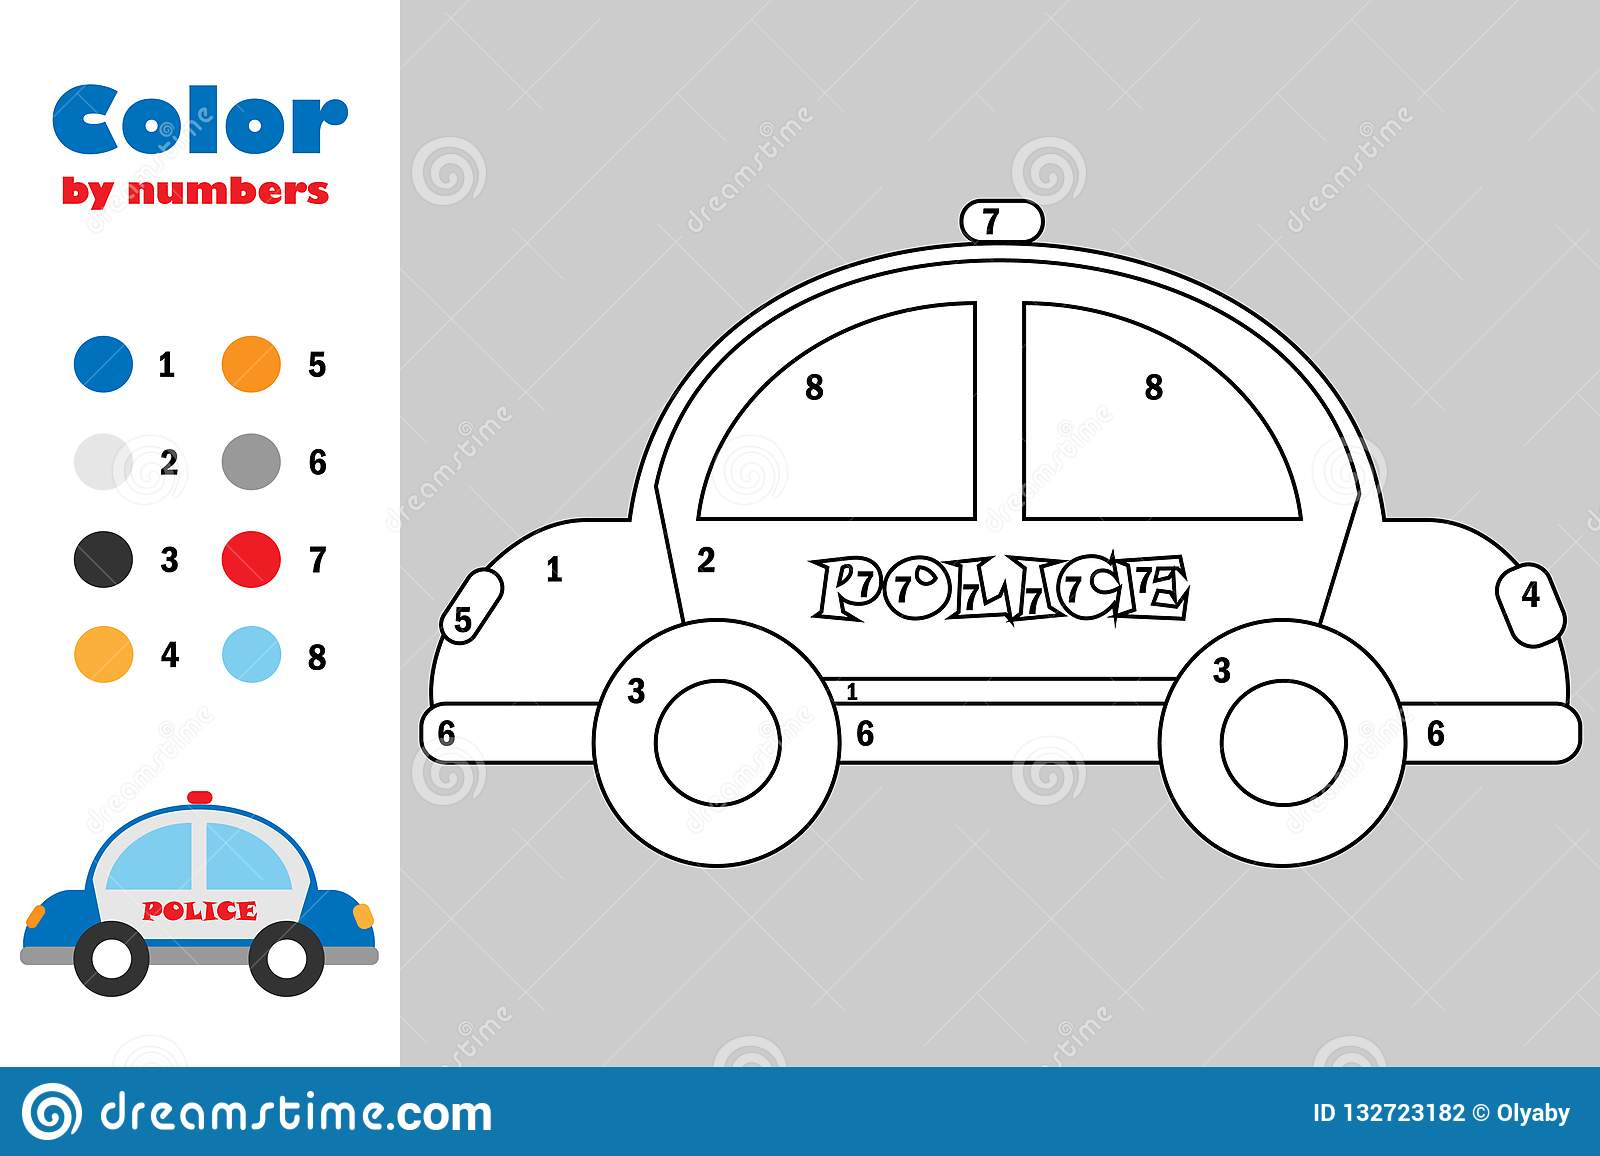 Police Car In Cartoon Style Color By Number Education